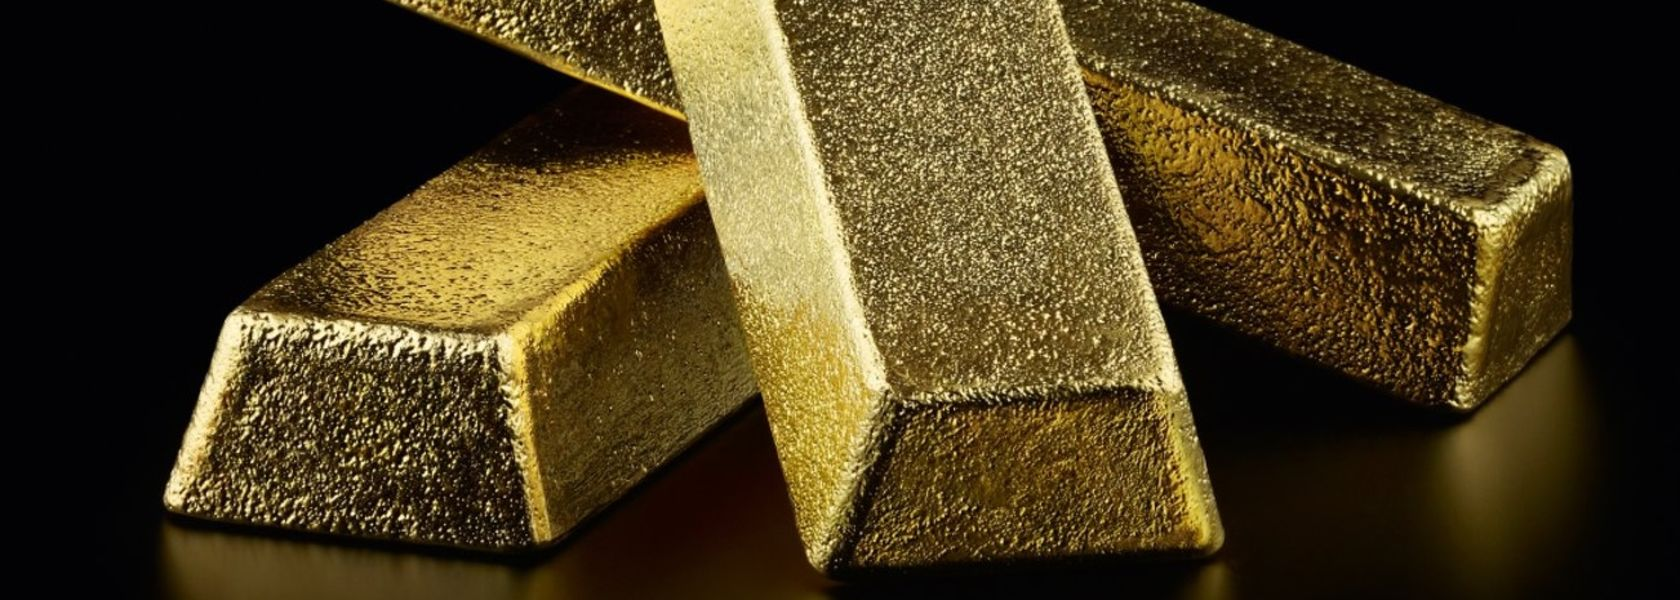 Consumer demand for gold to remain low in 2021, says WGC